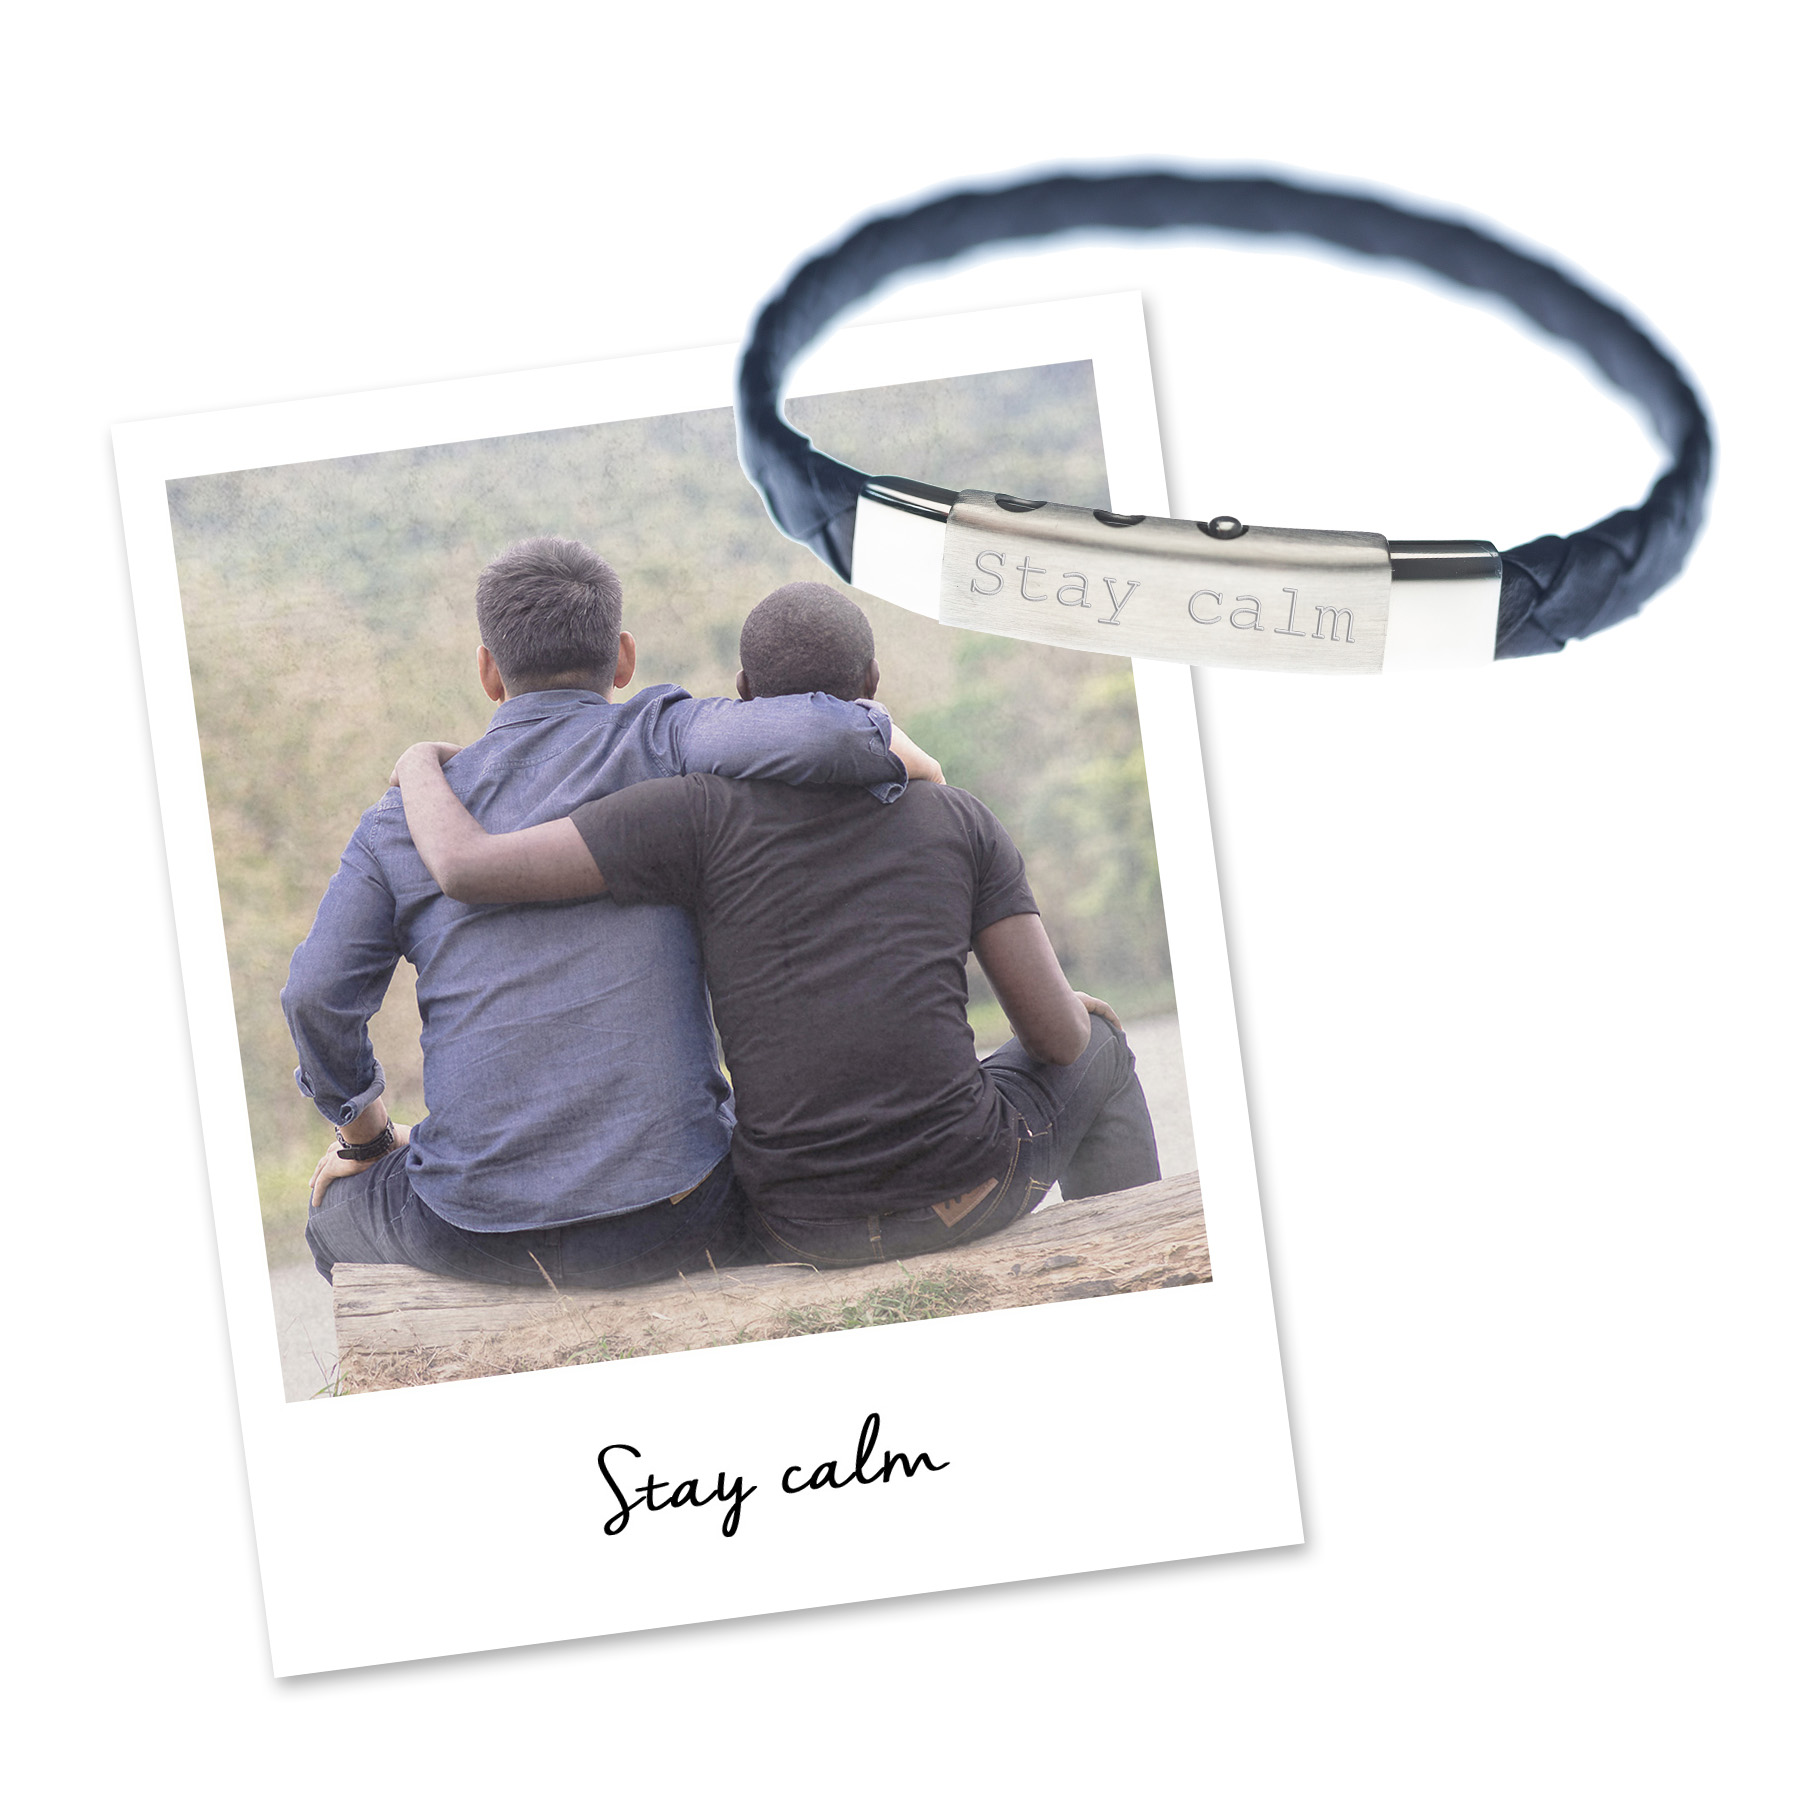 mantra charity mens bracelet for calm